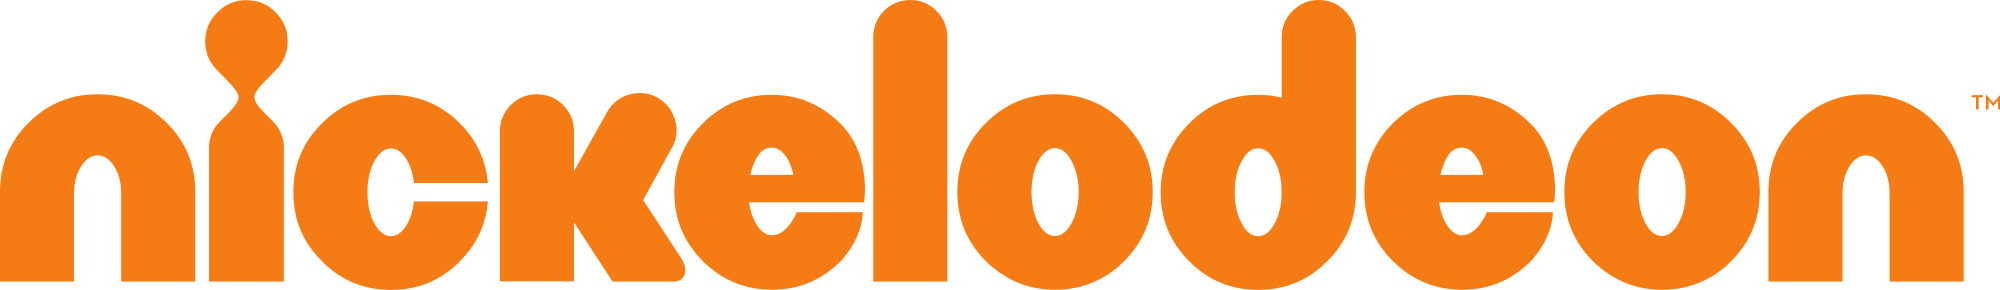 Nickelodeon logo png. File new svg wikimedia